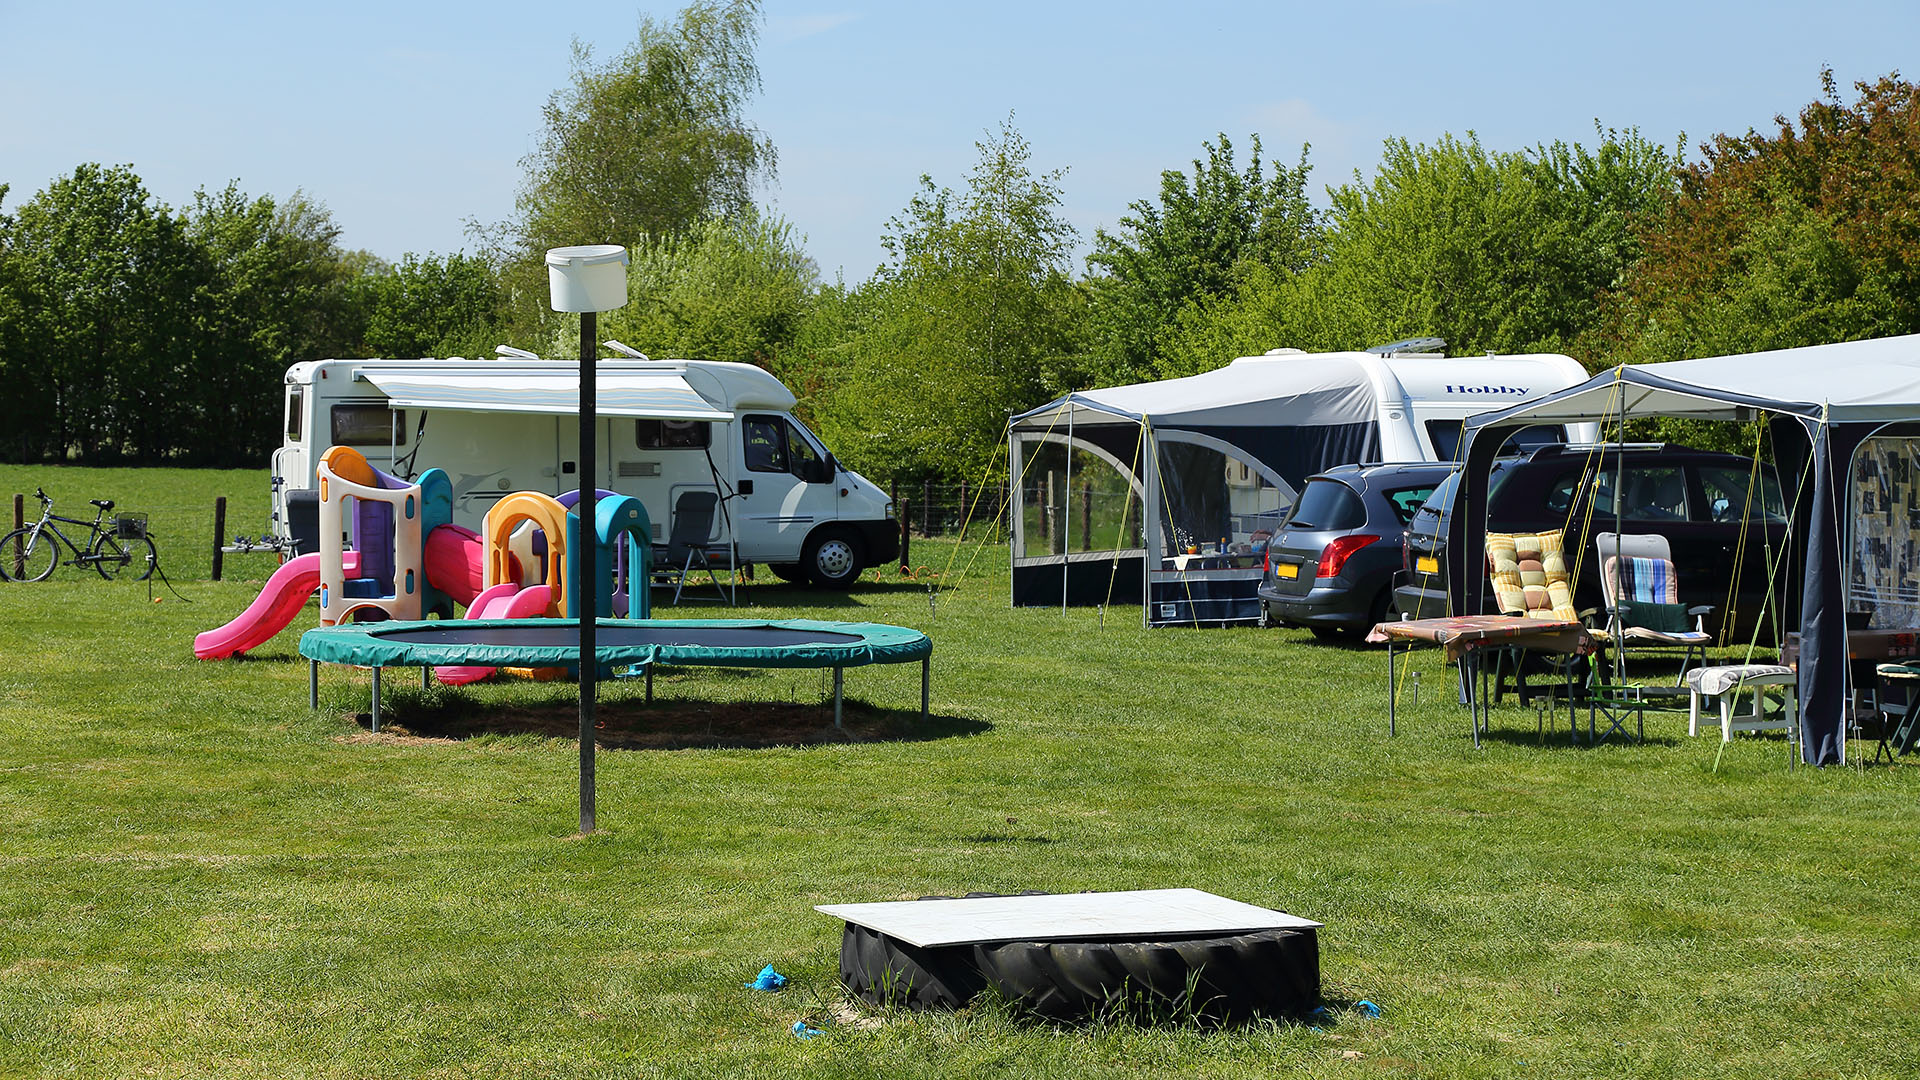 IMG_2752 Camping speelweide